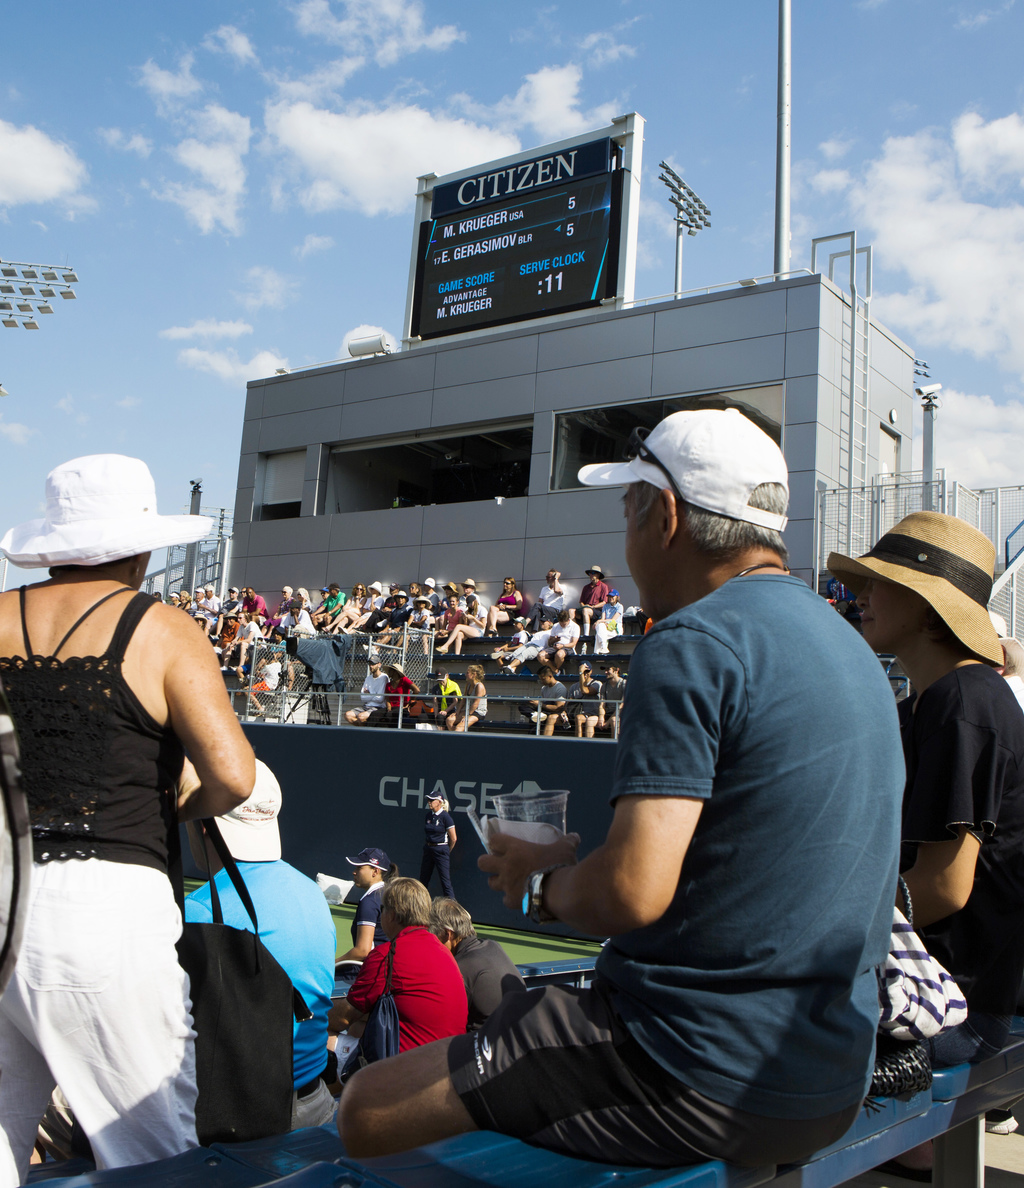 Crowds watch as Egor Gerasimov prepares to serve against Krueger Mitchell in a qualifying match Thursday, Aug. 24, 2017, at the U.S. Open tennis tourn...